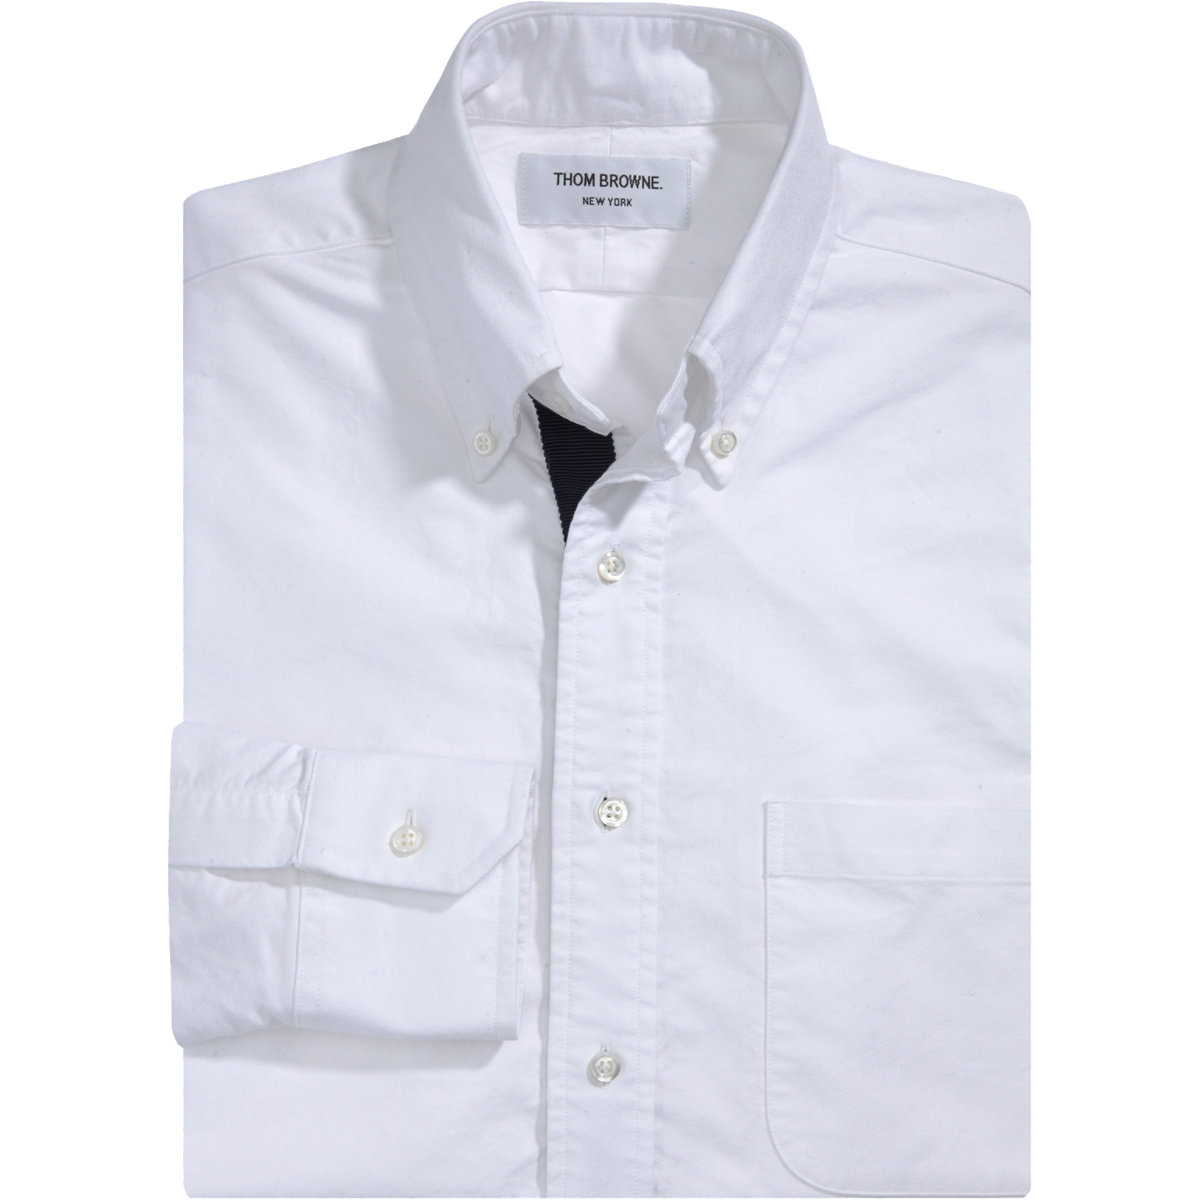 Lyst thom browne oxford shirt in white for men for Thom browne white shirt